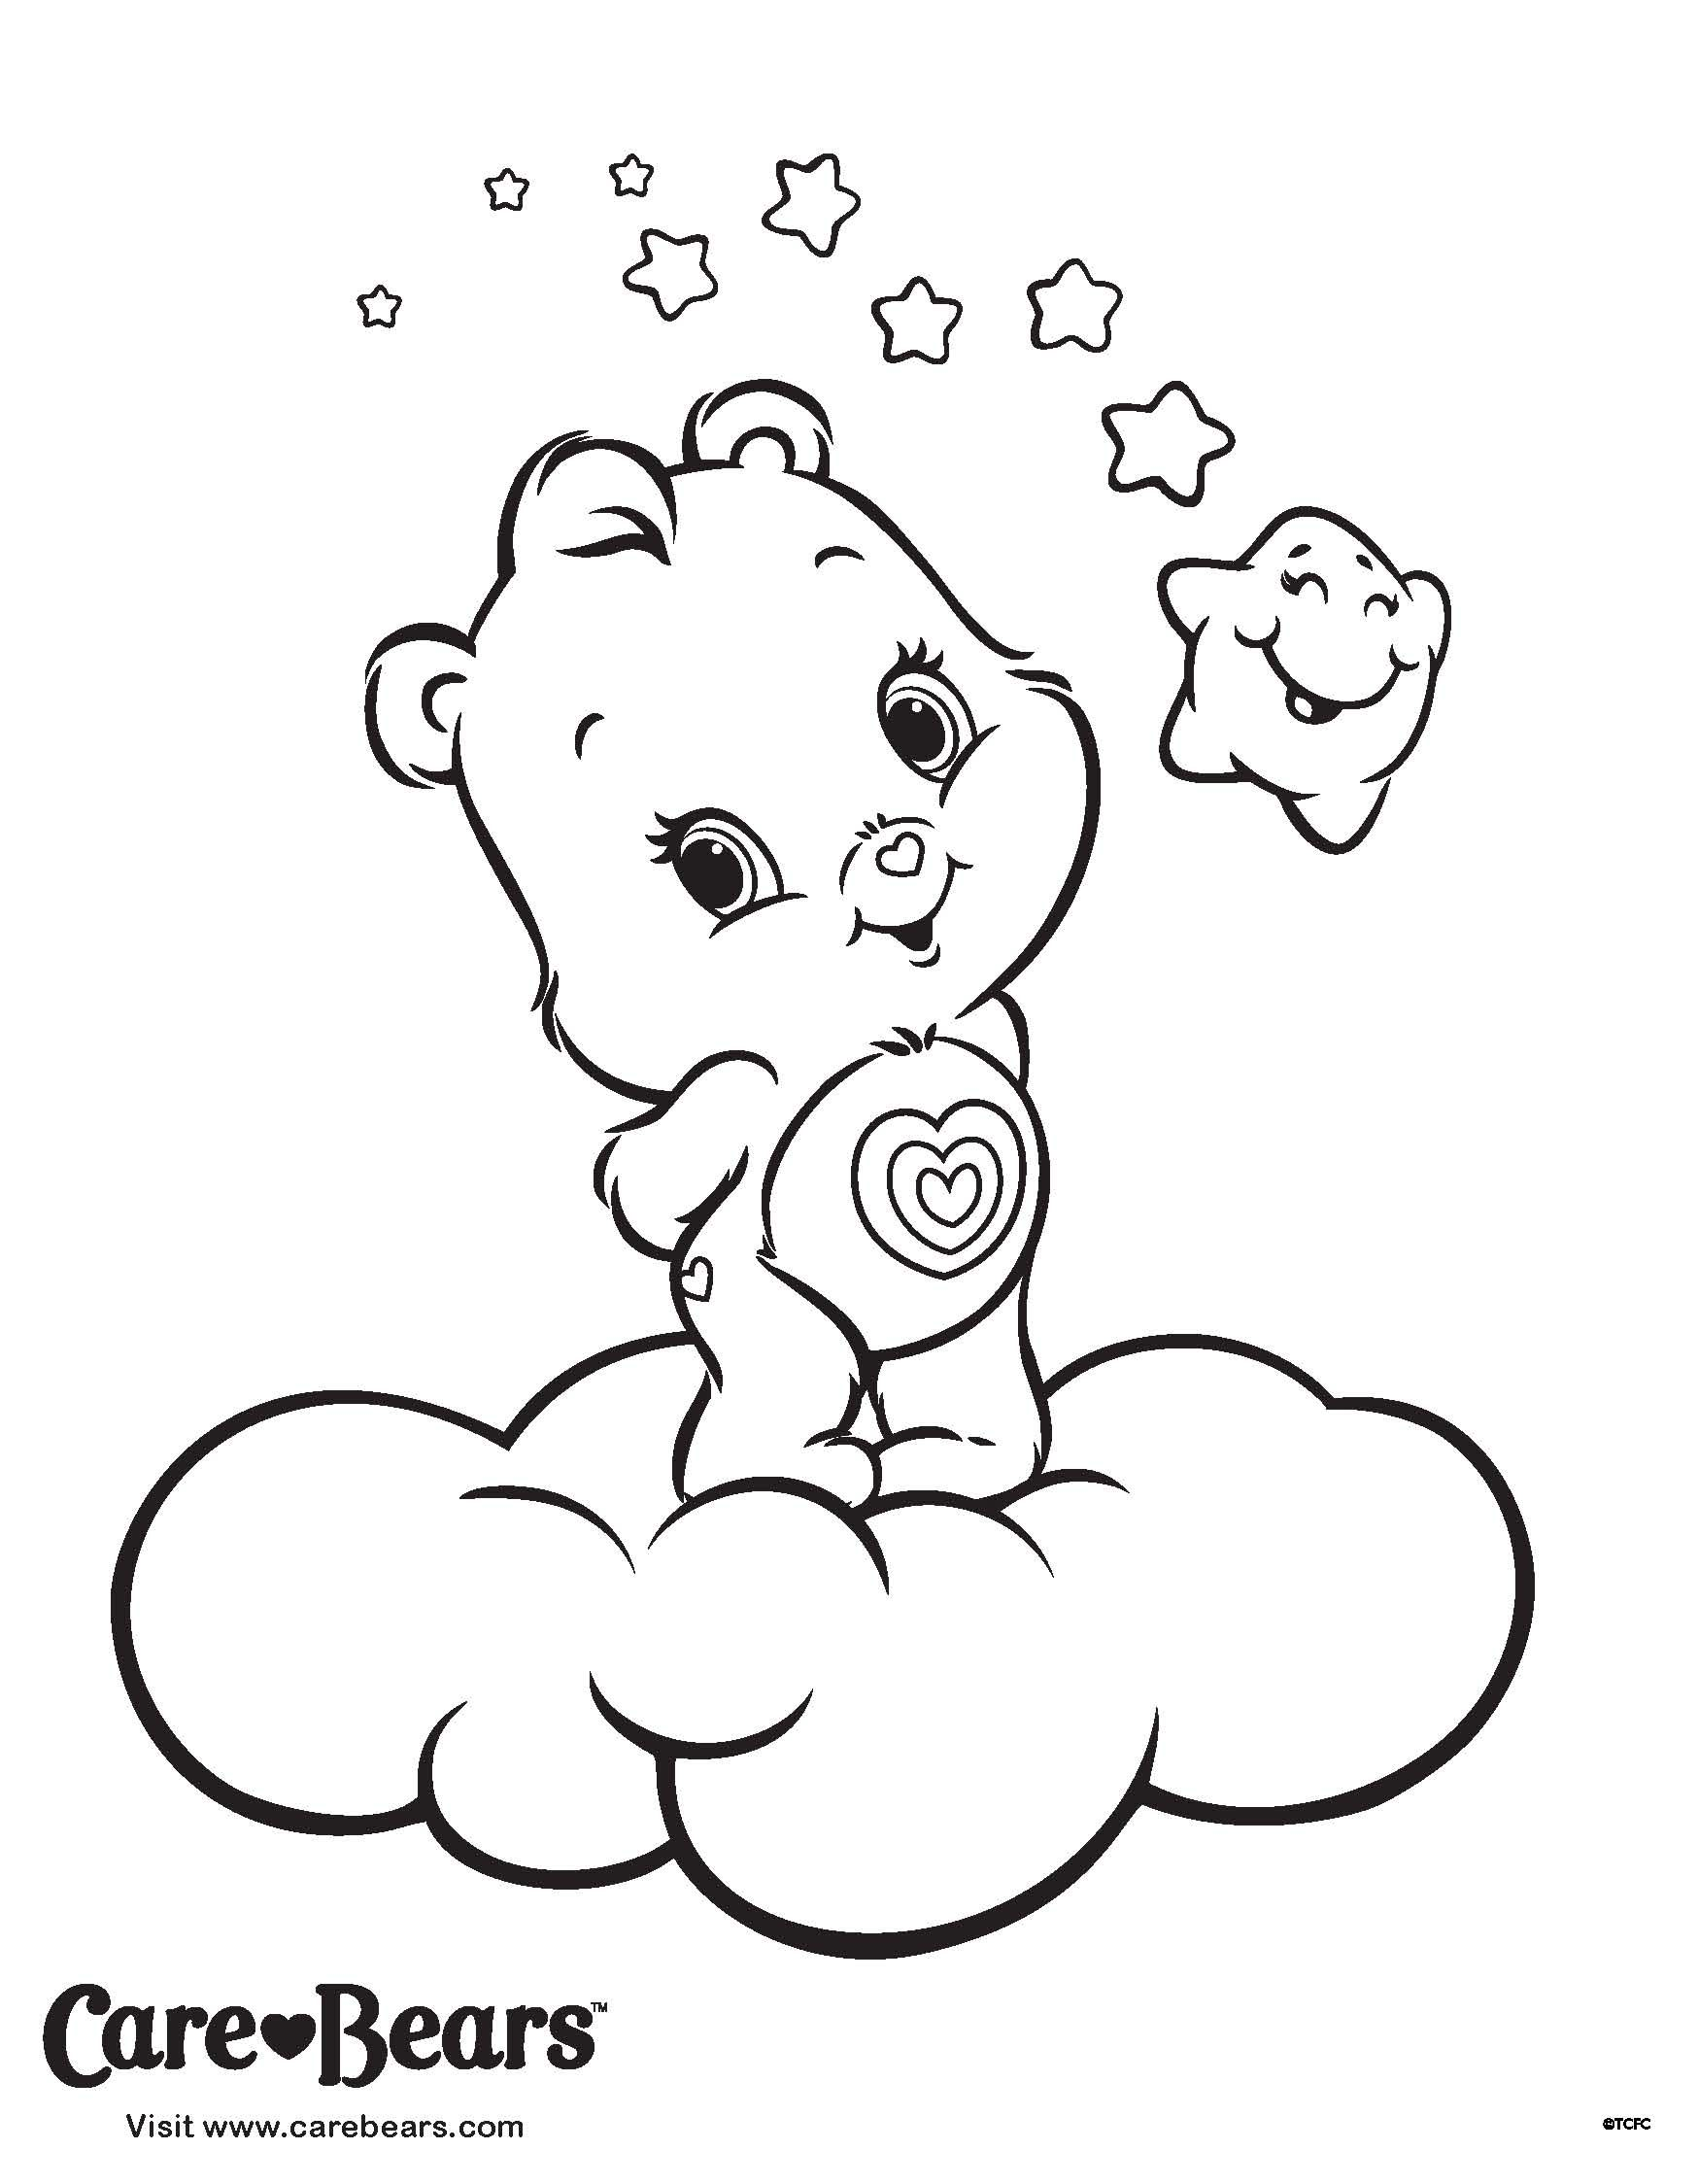 Care Bears Coloring Pages Bing Images Anns Coloring Pages